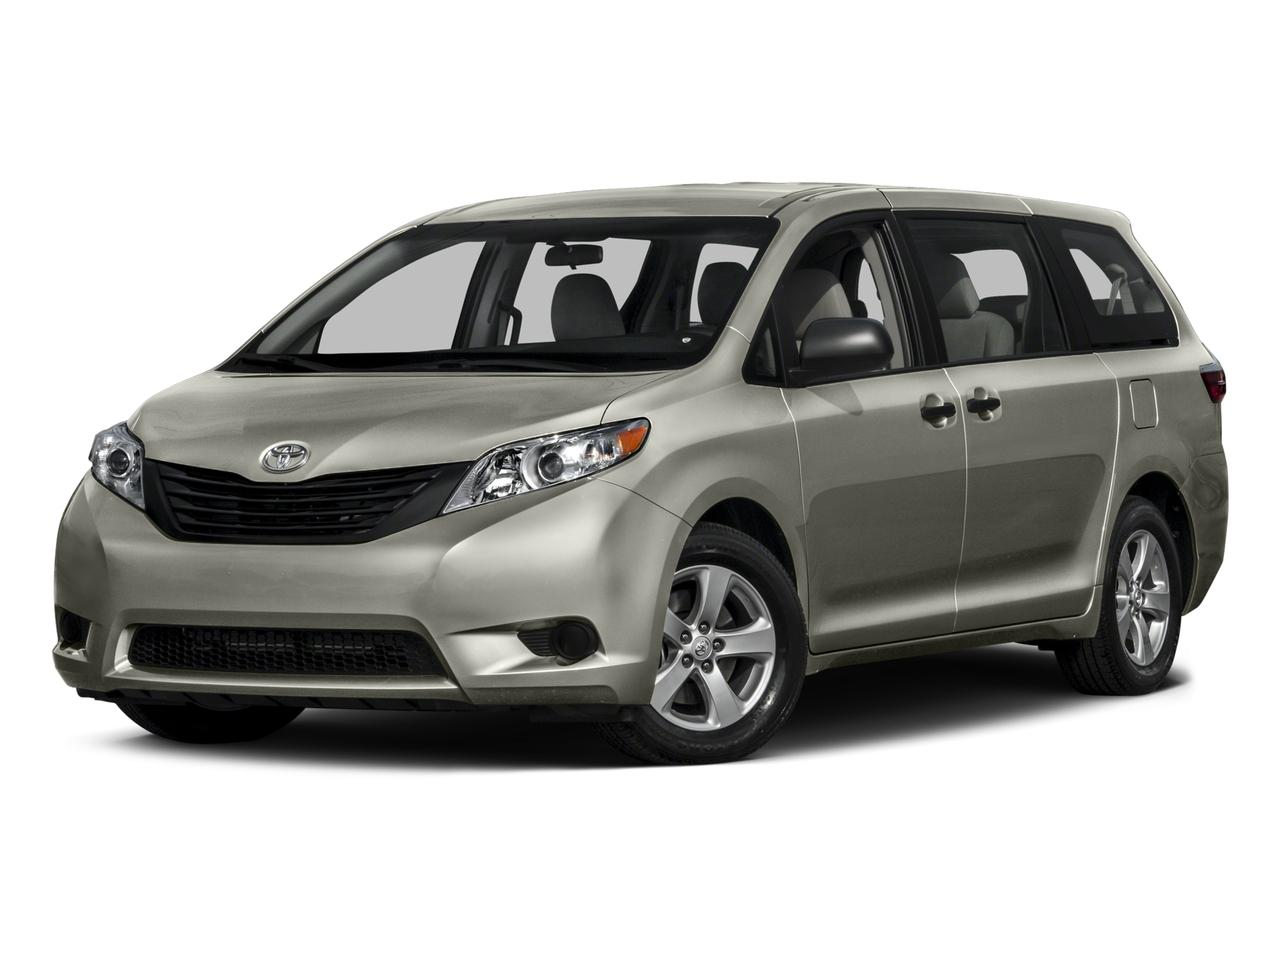 2015 Toyota Sienna Vehicle Photo in Colorado Springs, CO 80905